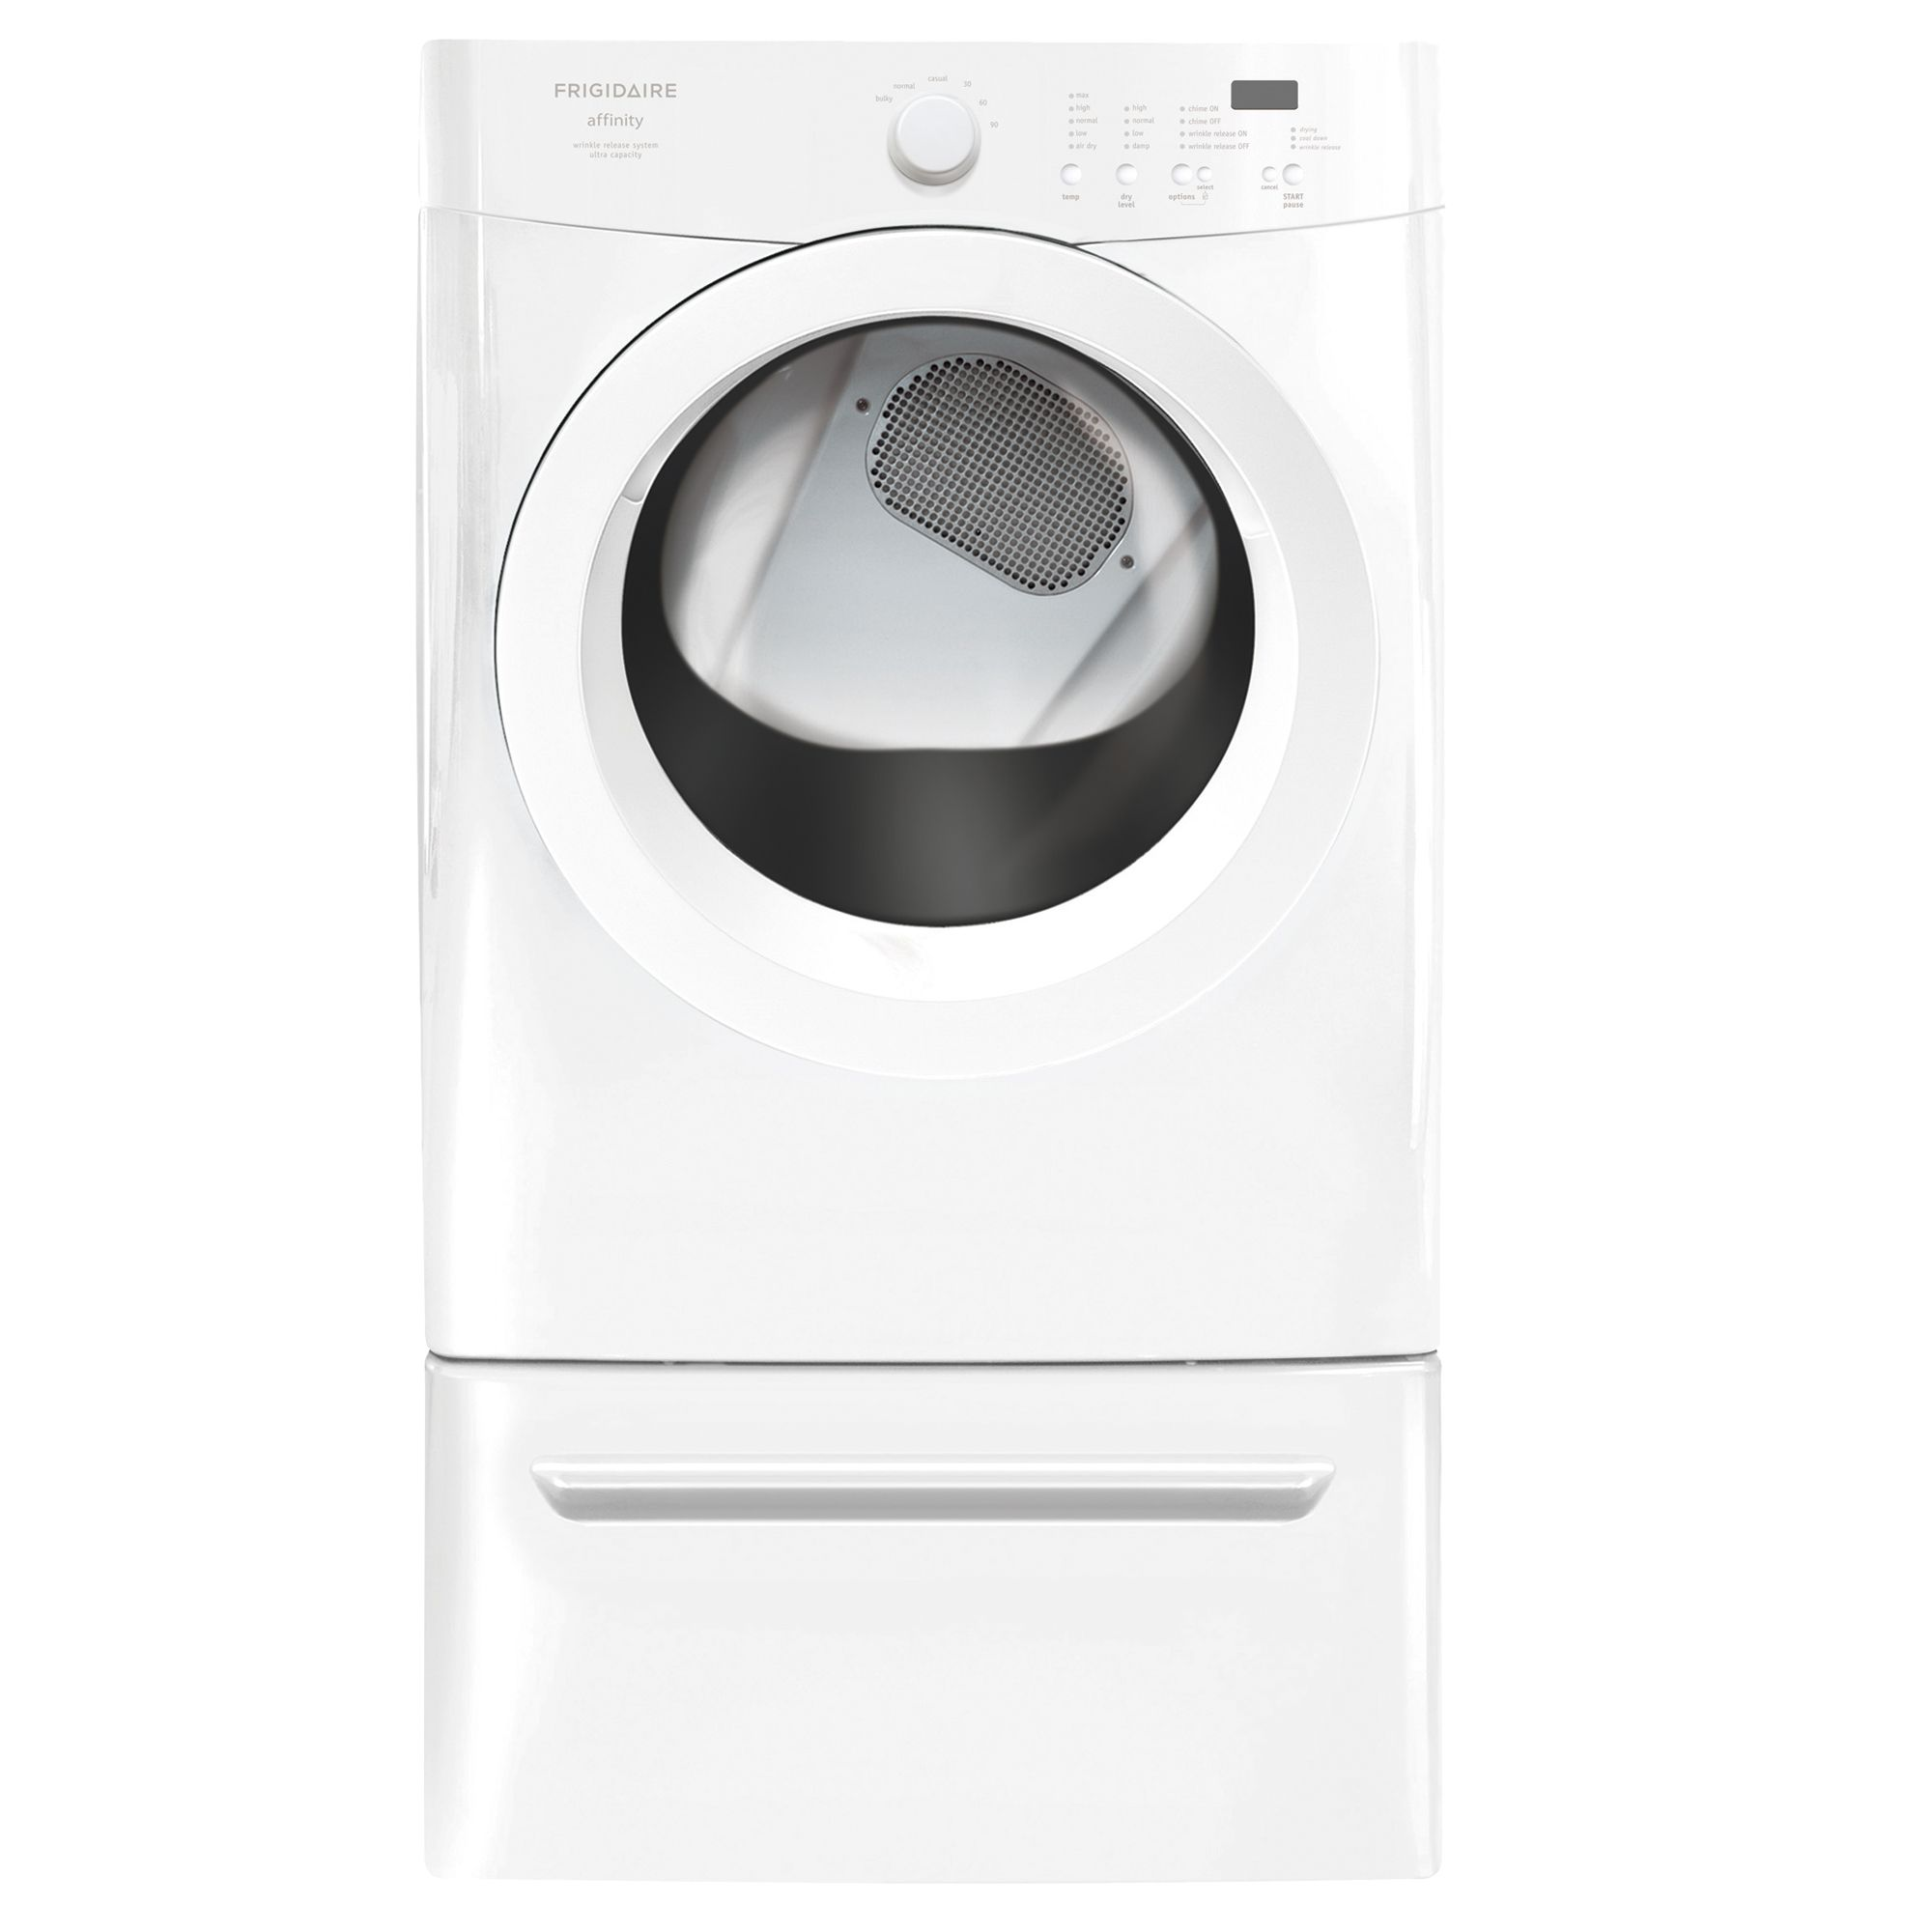 Frigidaire Affinity 7.0 cu. ft. Ultra-Capacity Electric Dryer